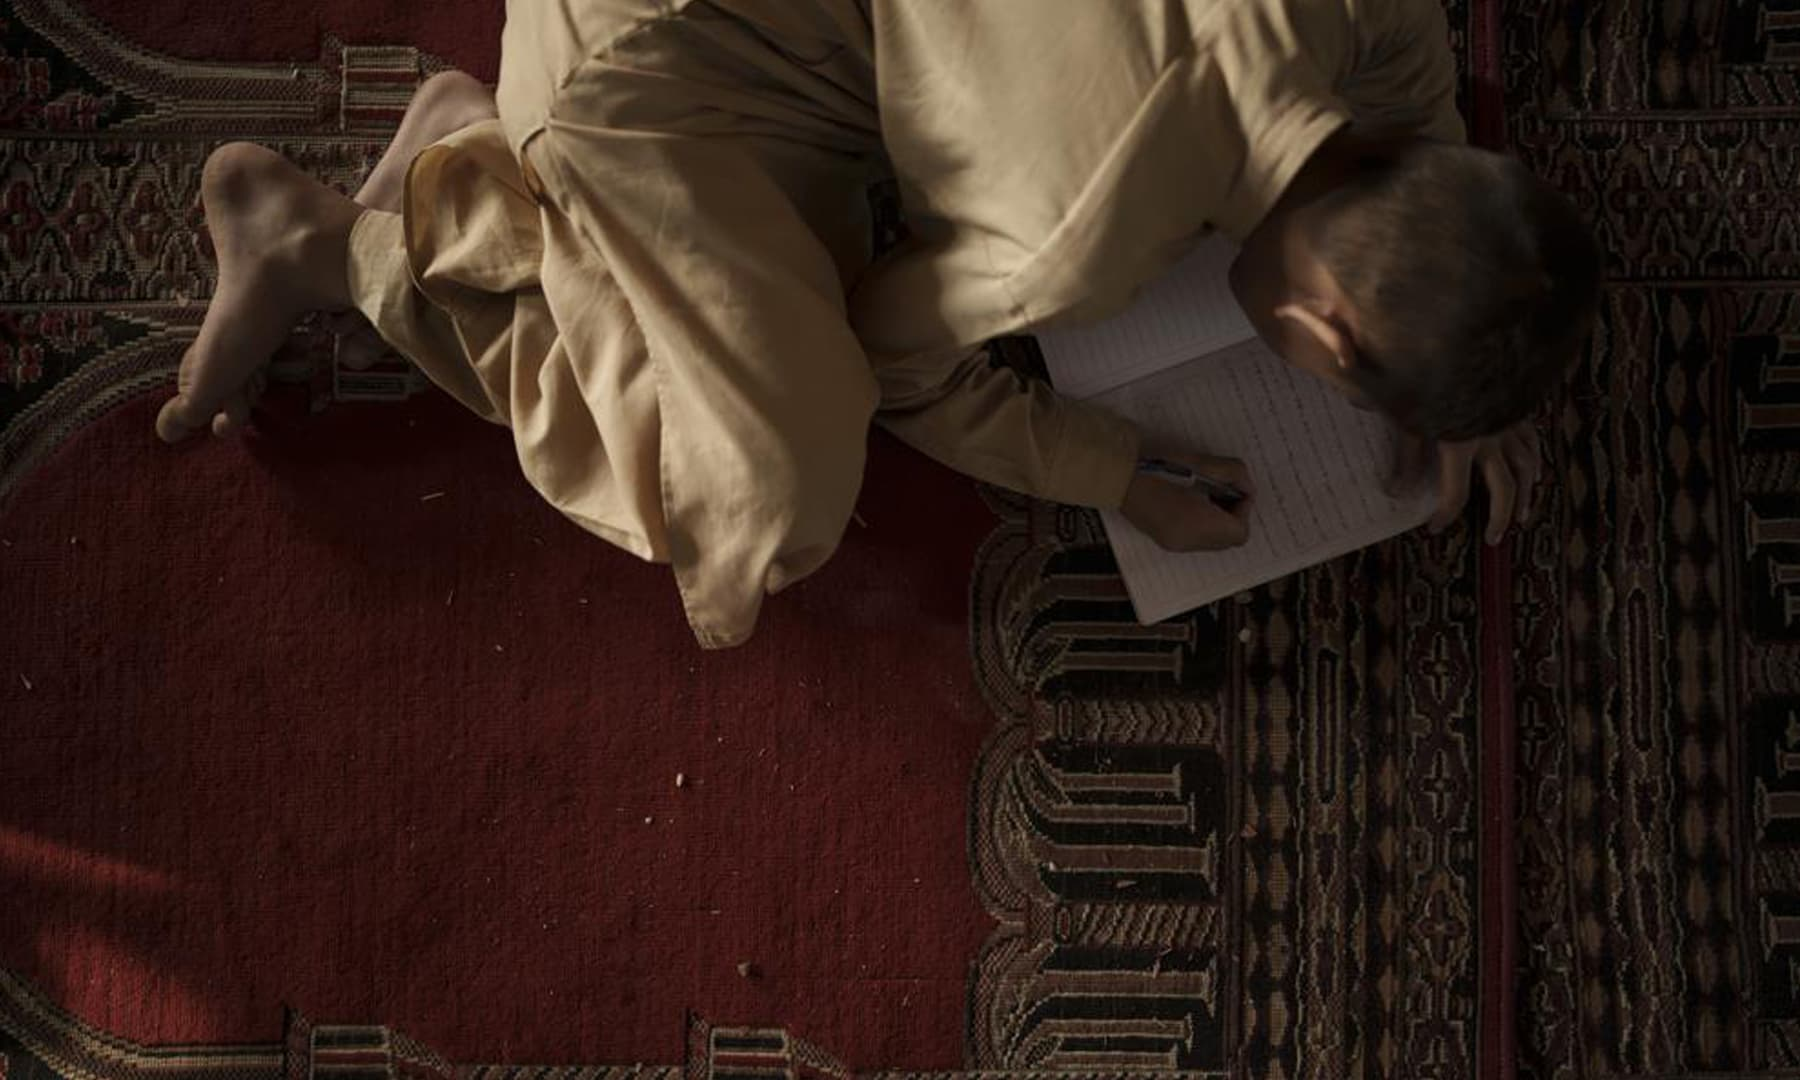 An Afghan student takes notes during class at a madressah in Kabul, Afghanistan. — AP